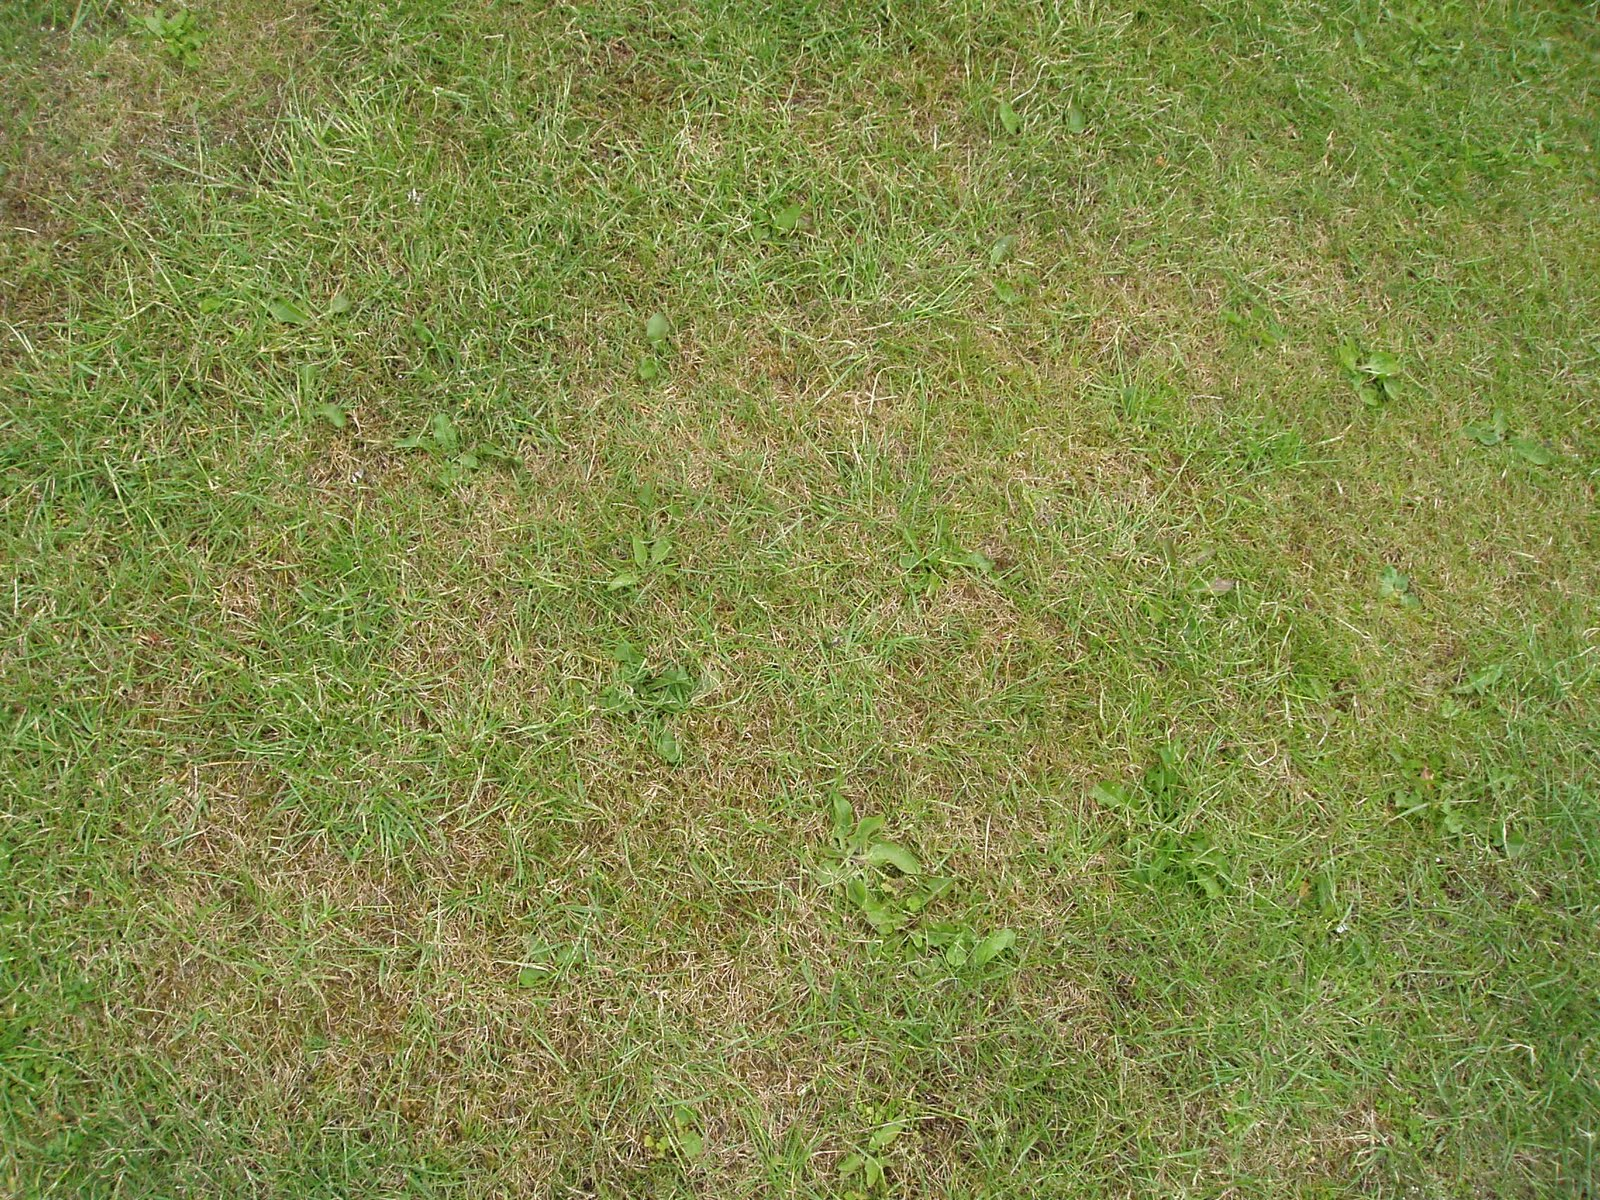 Gallimaufry & Chips: Foolproof Lawn Care